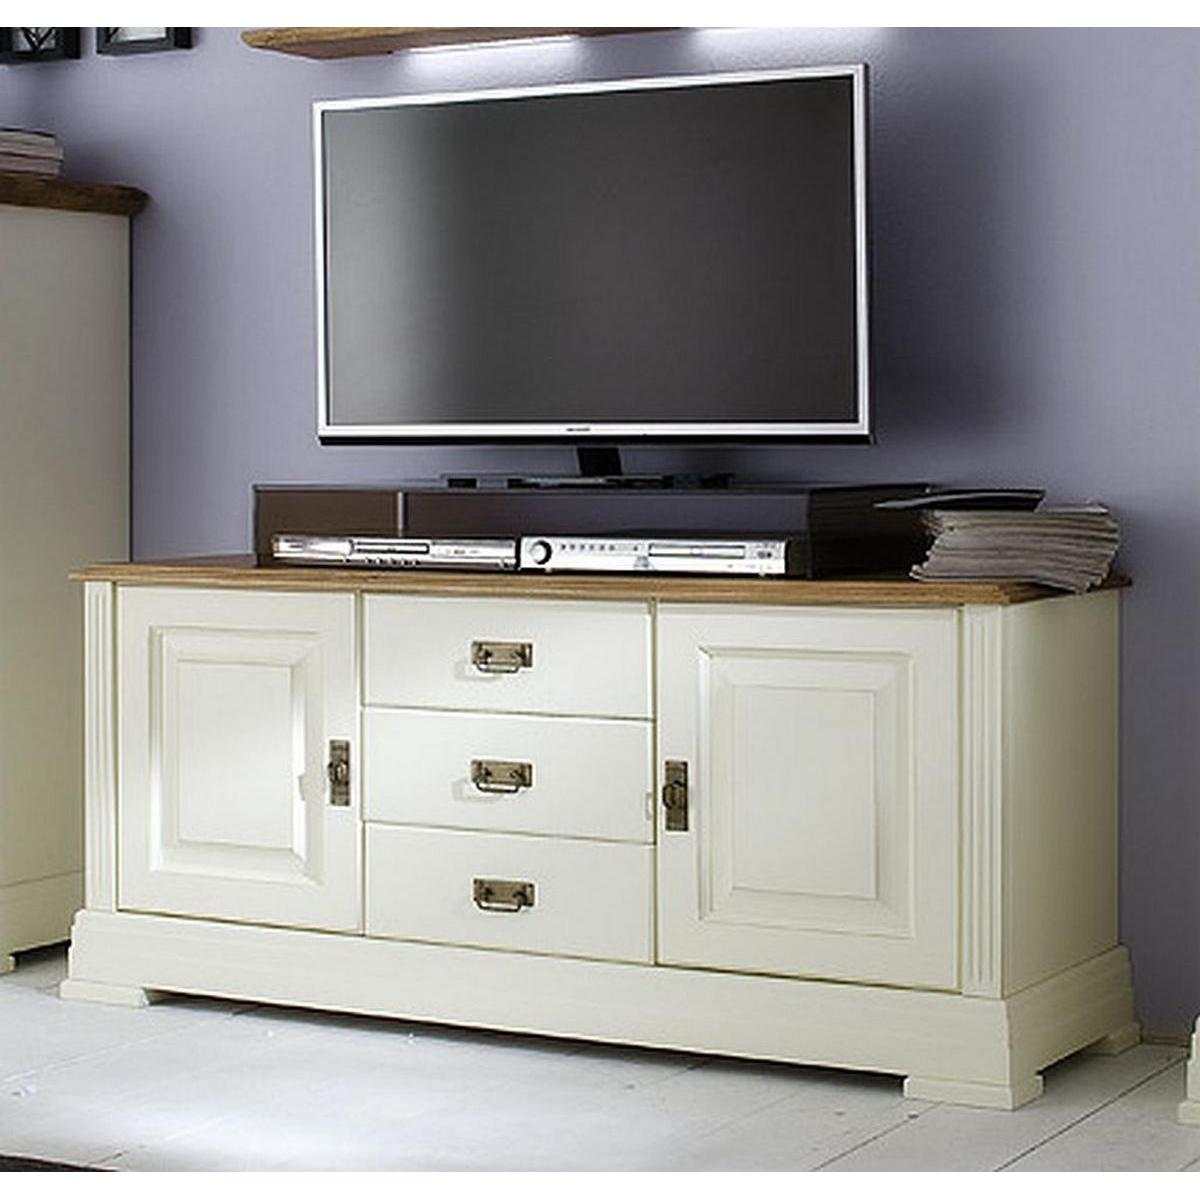 lowboard holz cheap lowboard tv ascoli i walnuss holz selber bauen ikea weiss hochglanz sydney. Black Bedroom Furniture Sets. Home Design Ideas